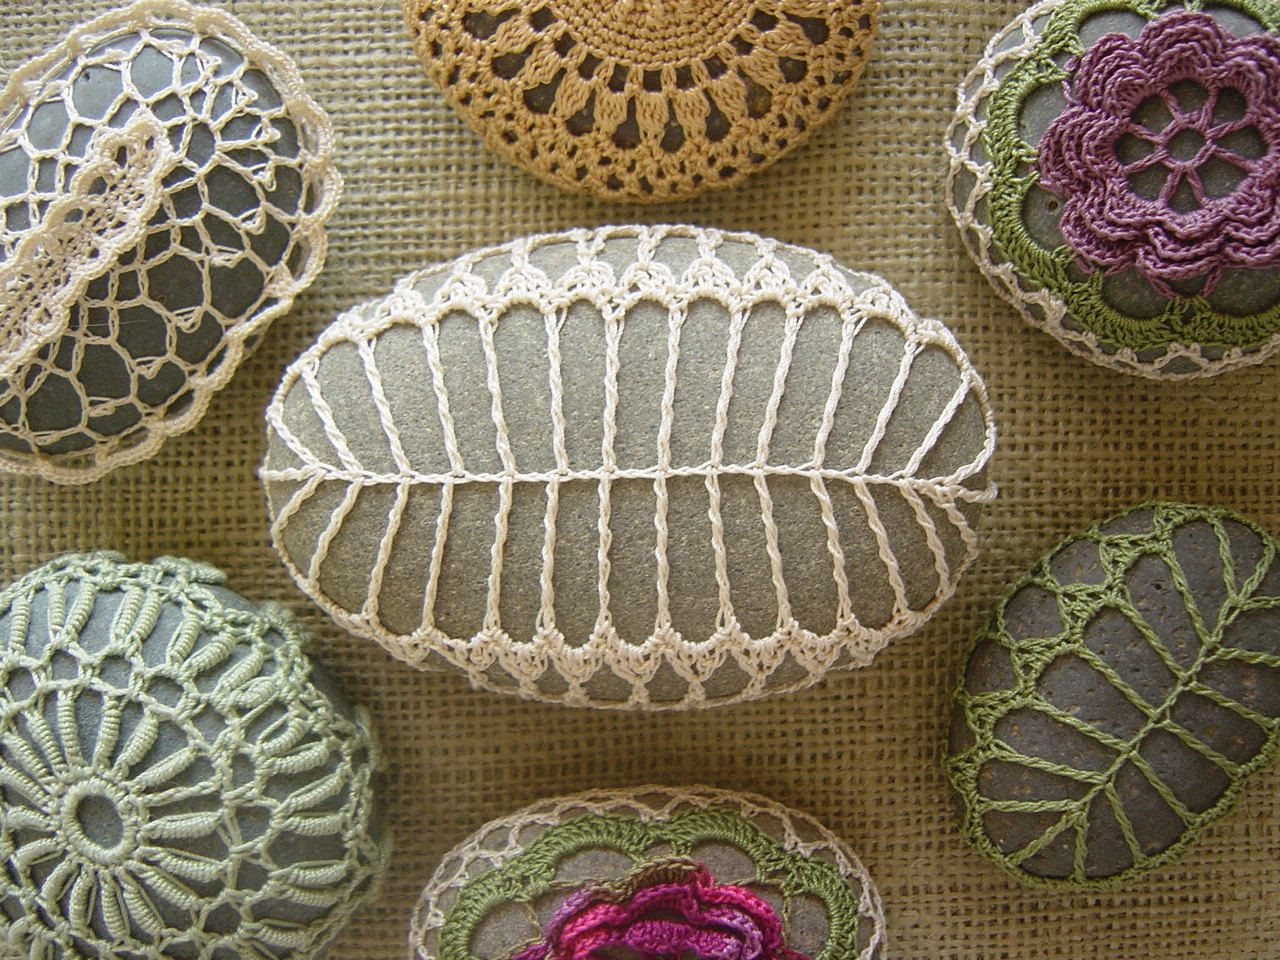 Knitted beach stone Crochet lace stone cover